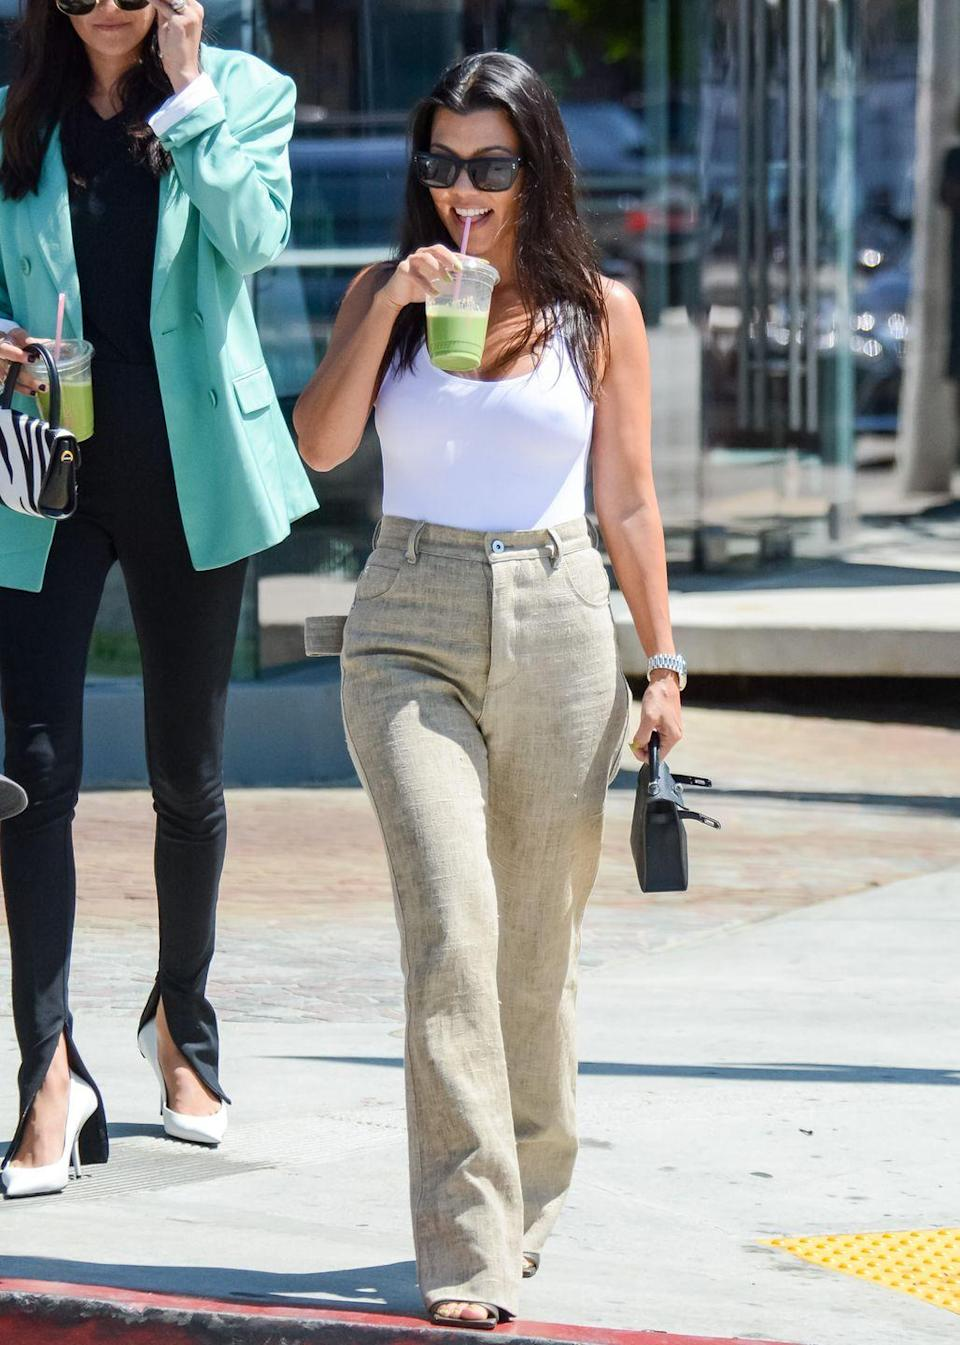 """<p>One of Kourtney's favorite breakfasts is her on-the-go avocado smoothie, which is made with honey and coconut milk. The full recipe is on <a href=""""https://poosh.com/how-to-make-an-avocado-shake/"""" rel=""""nofollow noopener"""" target=""""_blank"""" data-ylk=""""slk:Poosh"""" class=""""link rapid-noclick-resp"""">Poosh</a>. </p>"""